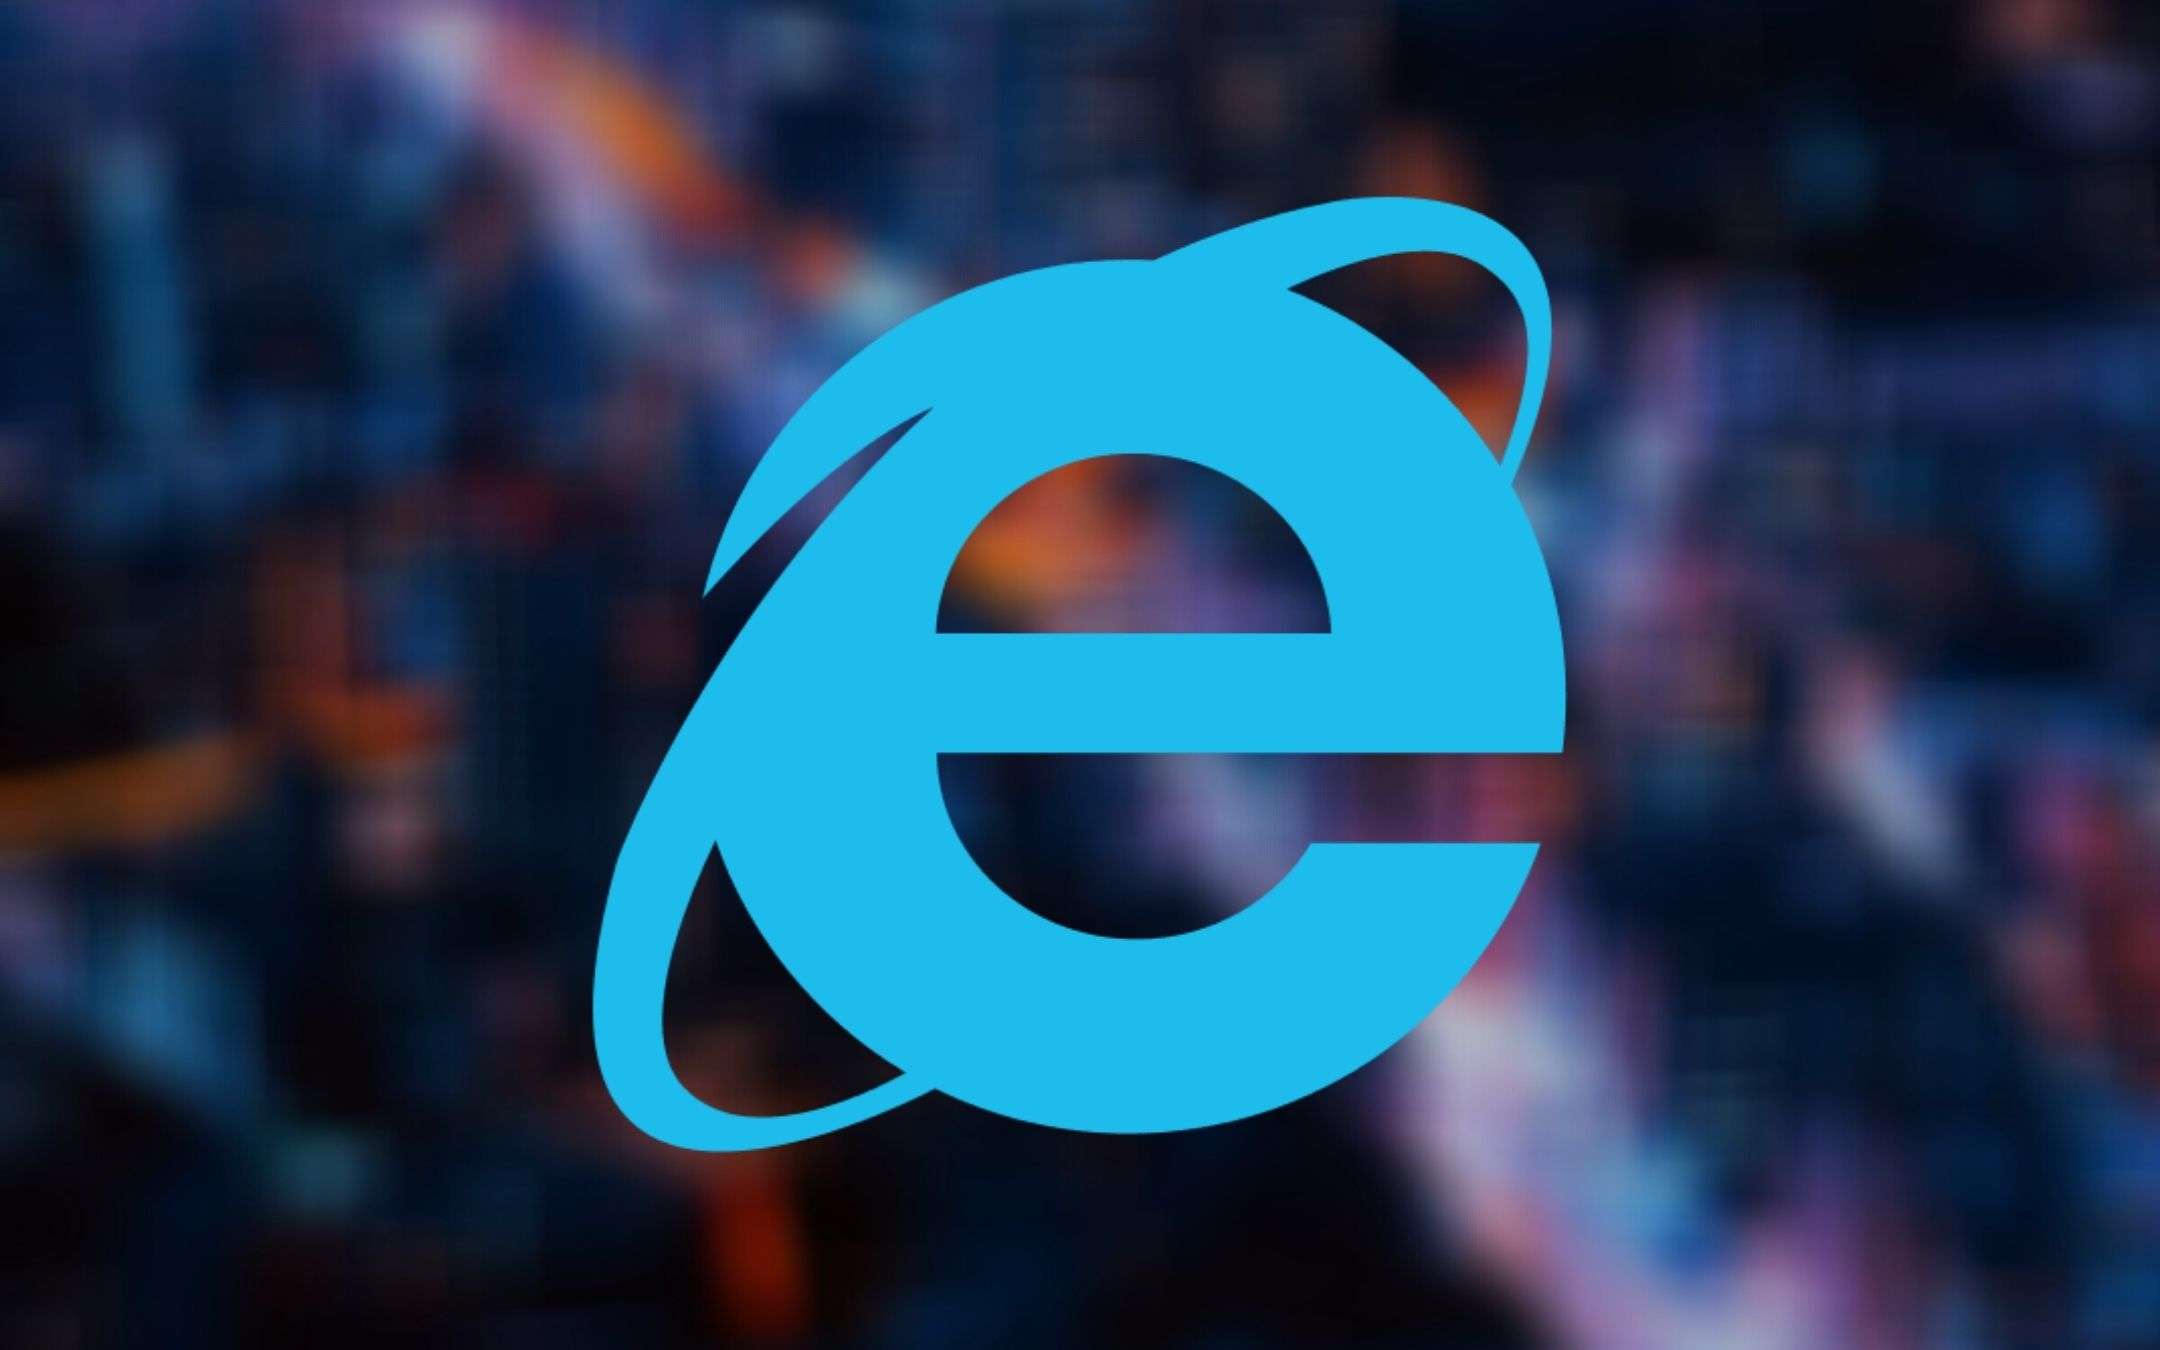 Internet Explorer: Stop support from August 2021